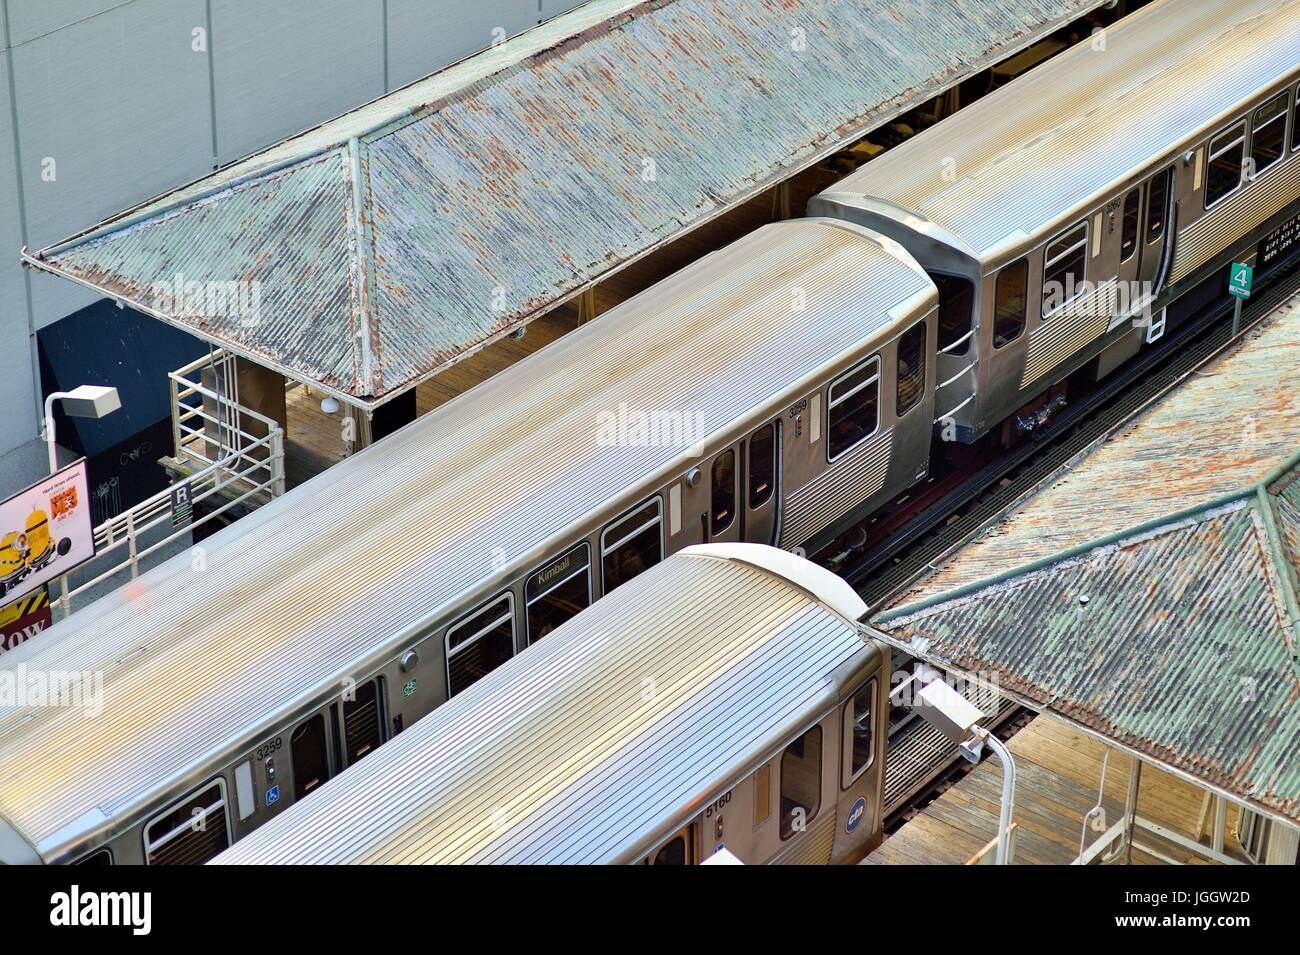 On tracks that gave rise to the term Loop in Chicago's famous downtown area, a pair of CTA rapid transit trains - Stock Image